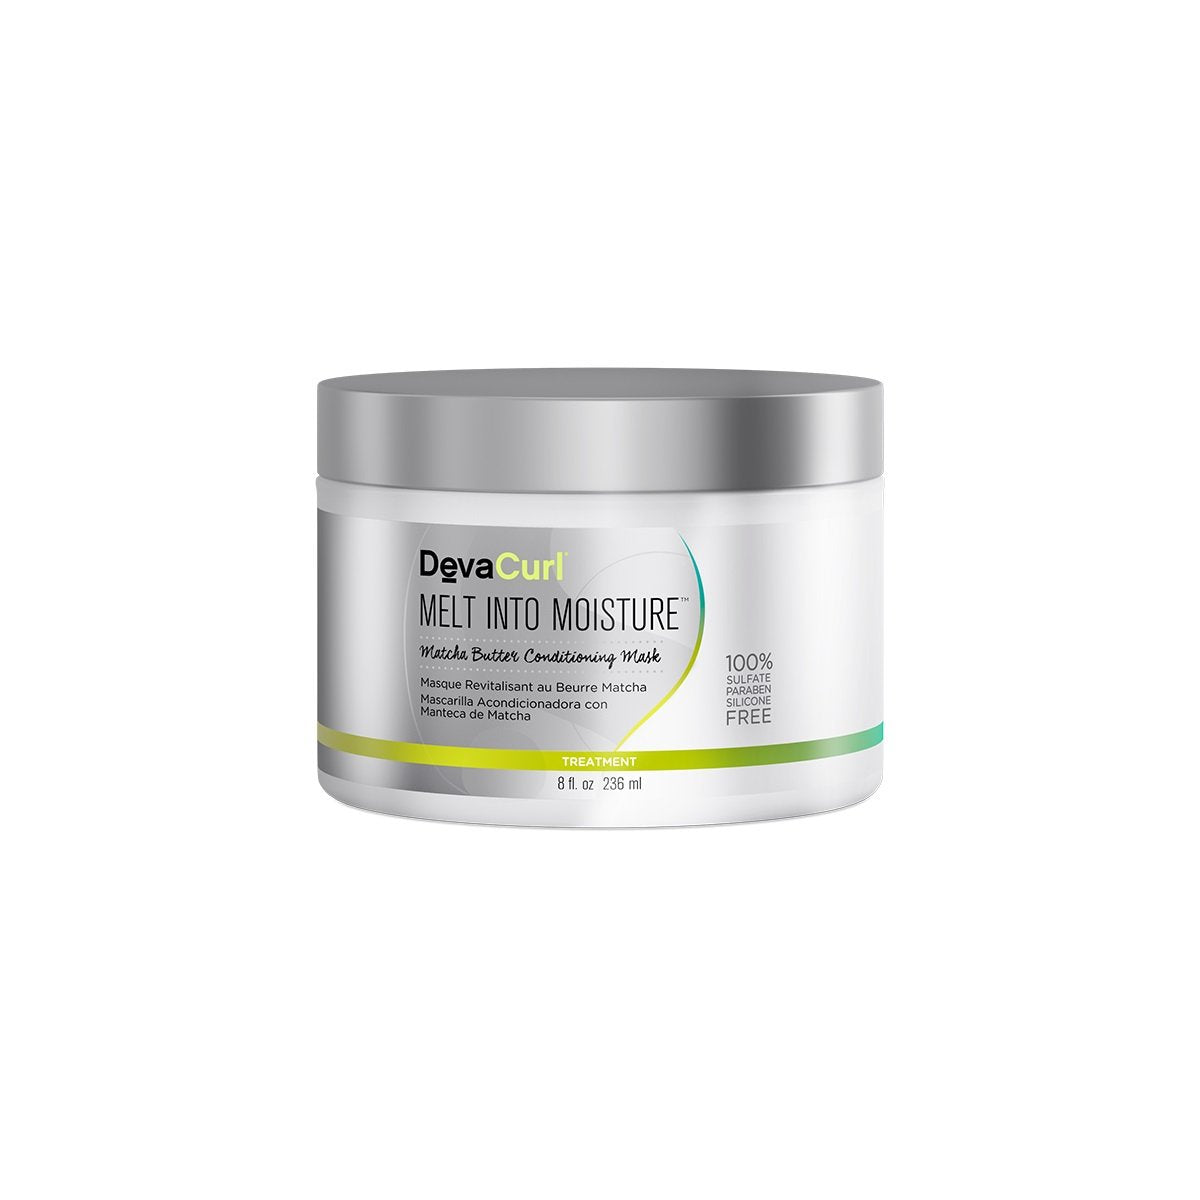 DevaCurl Melt Into Moisture Conditioning Mask, 8.0 oz